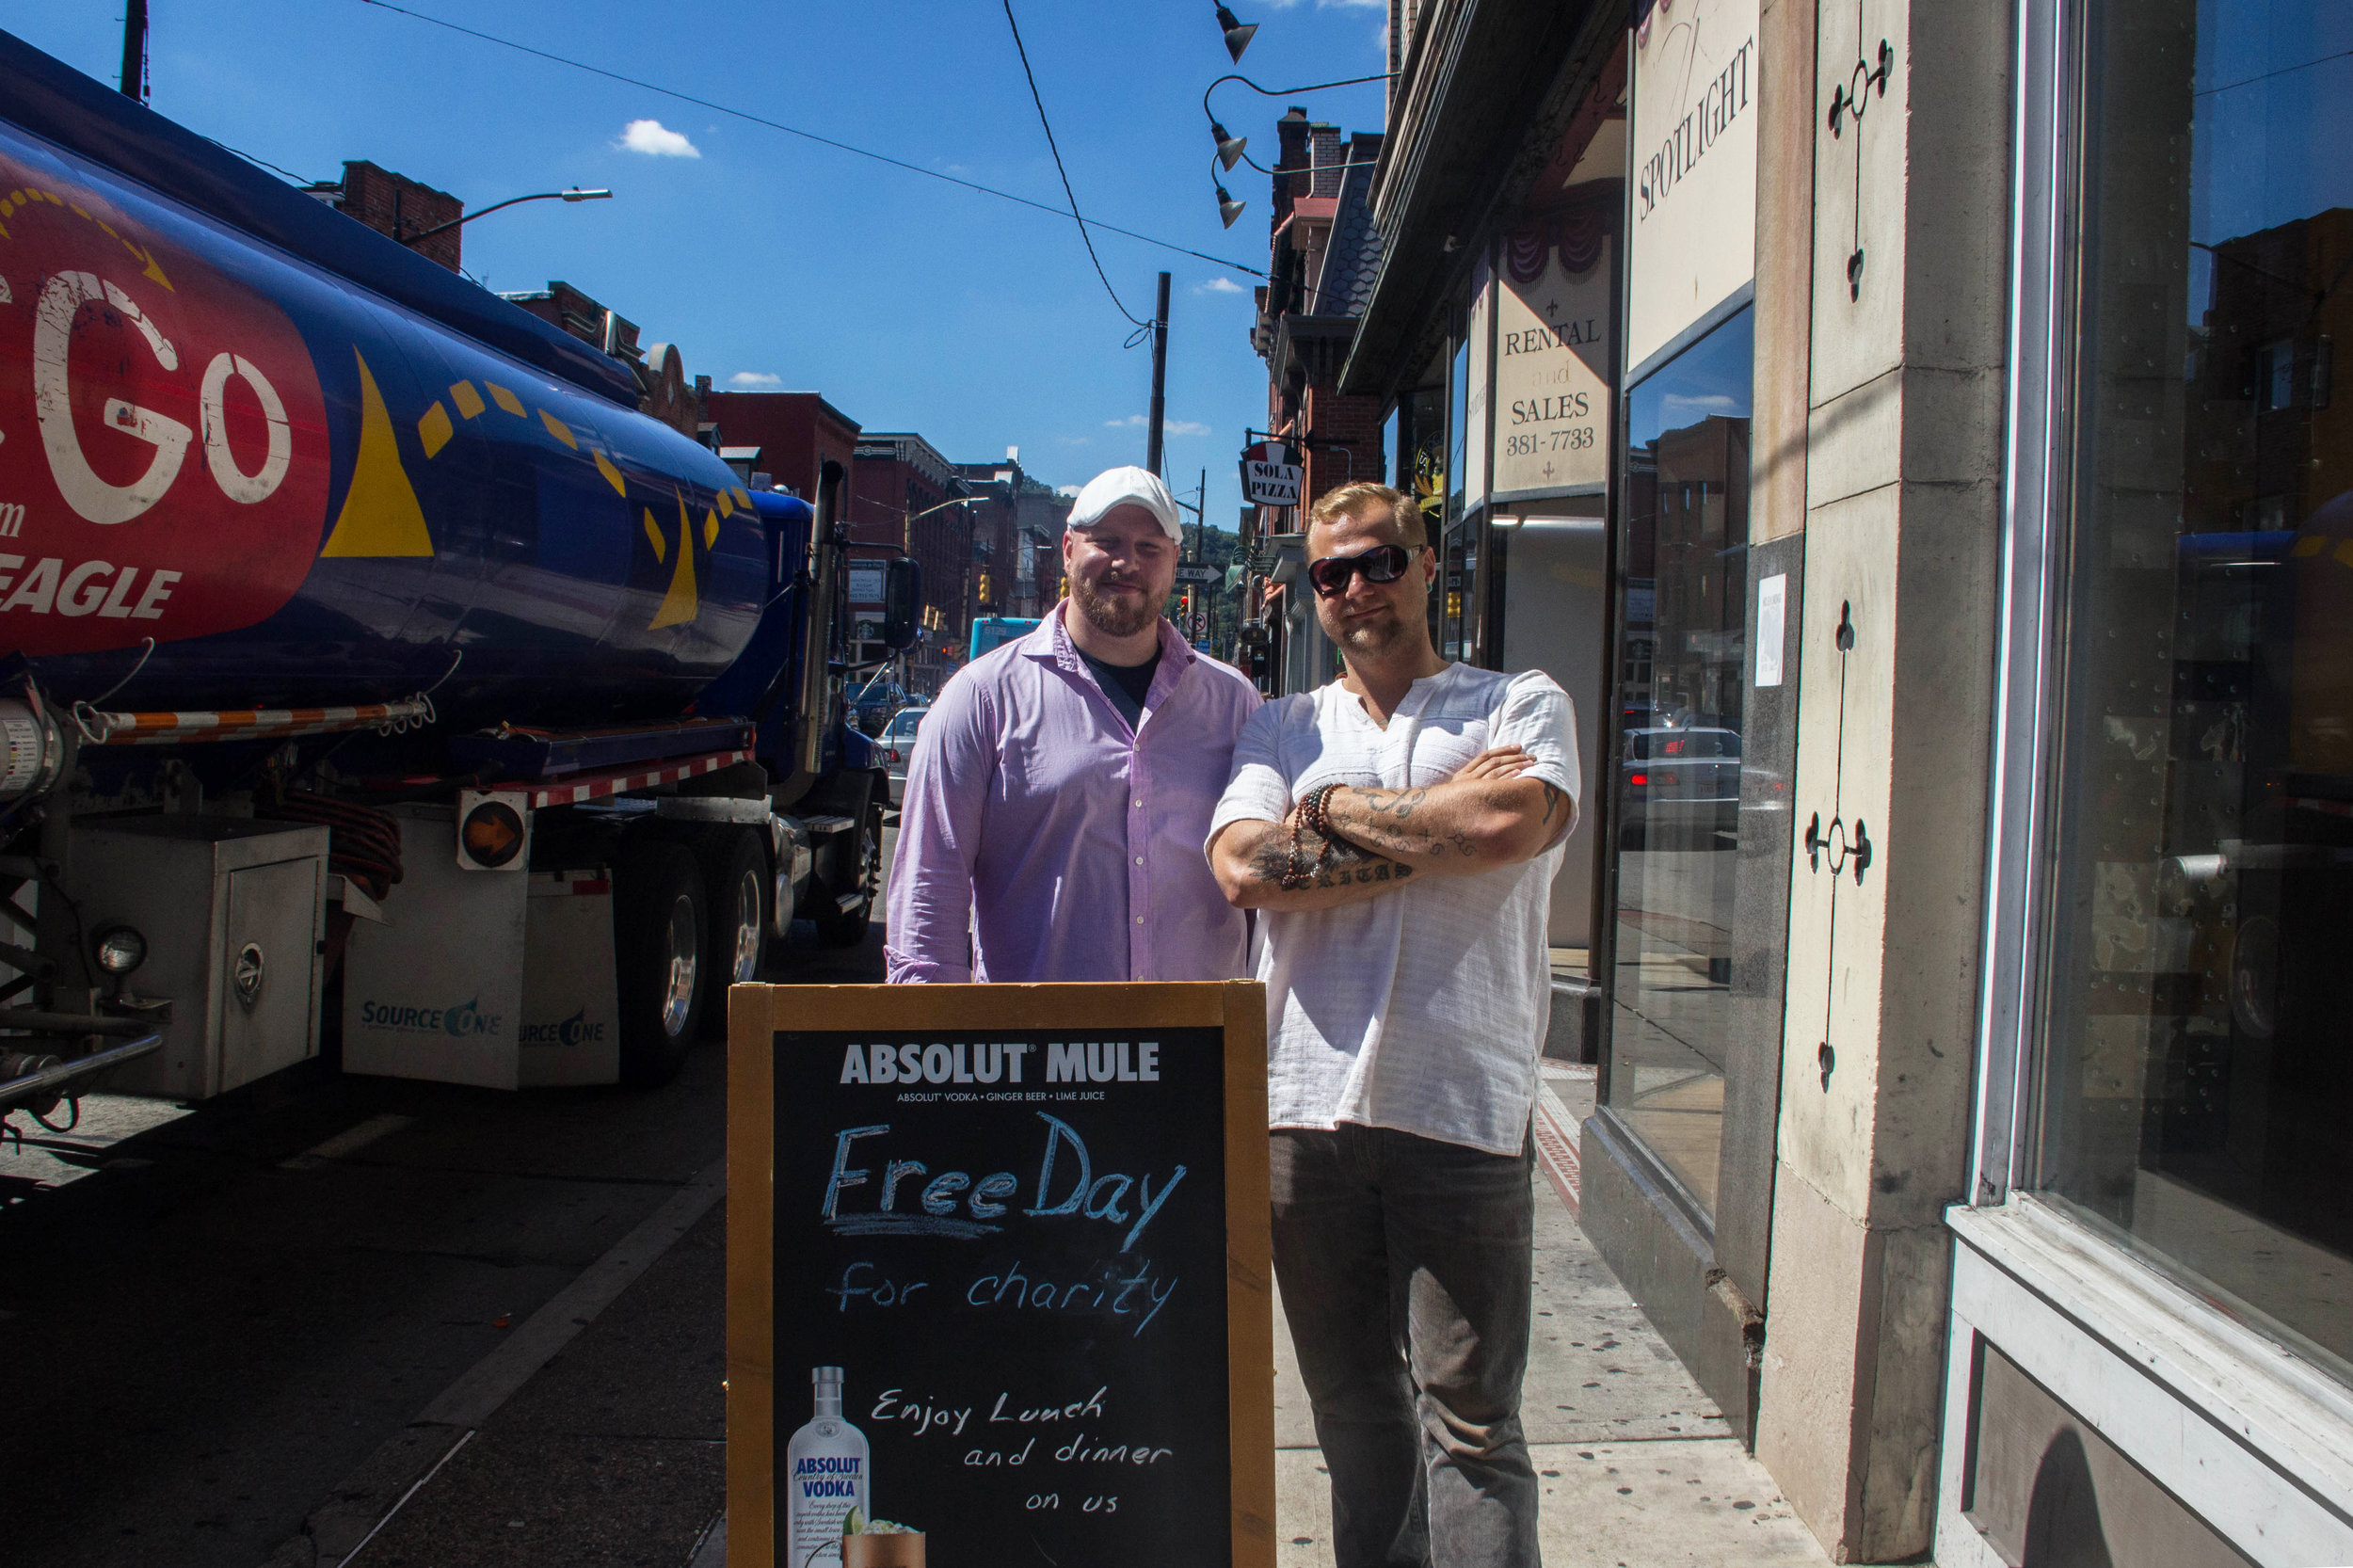 Owner's Colin Smith and Zachary Winghart (names ordered respectively from left to right).